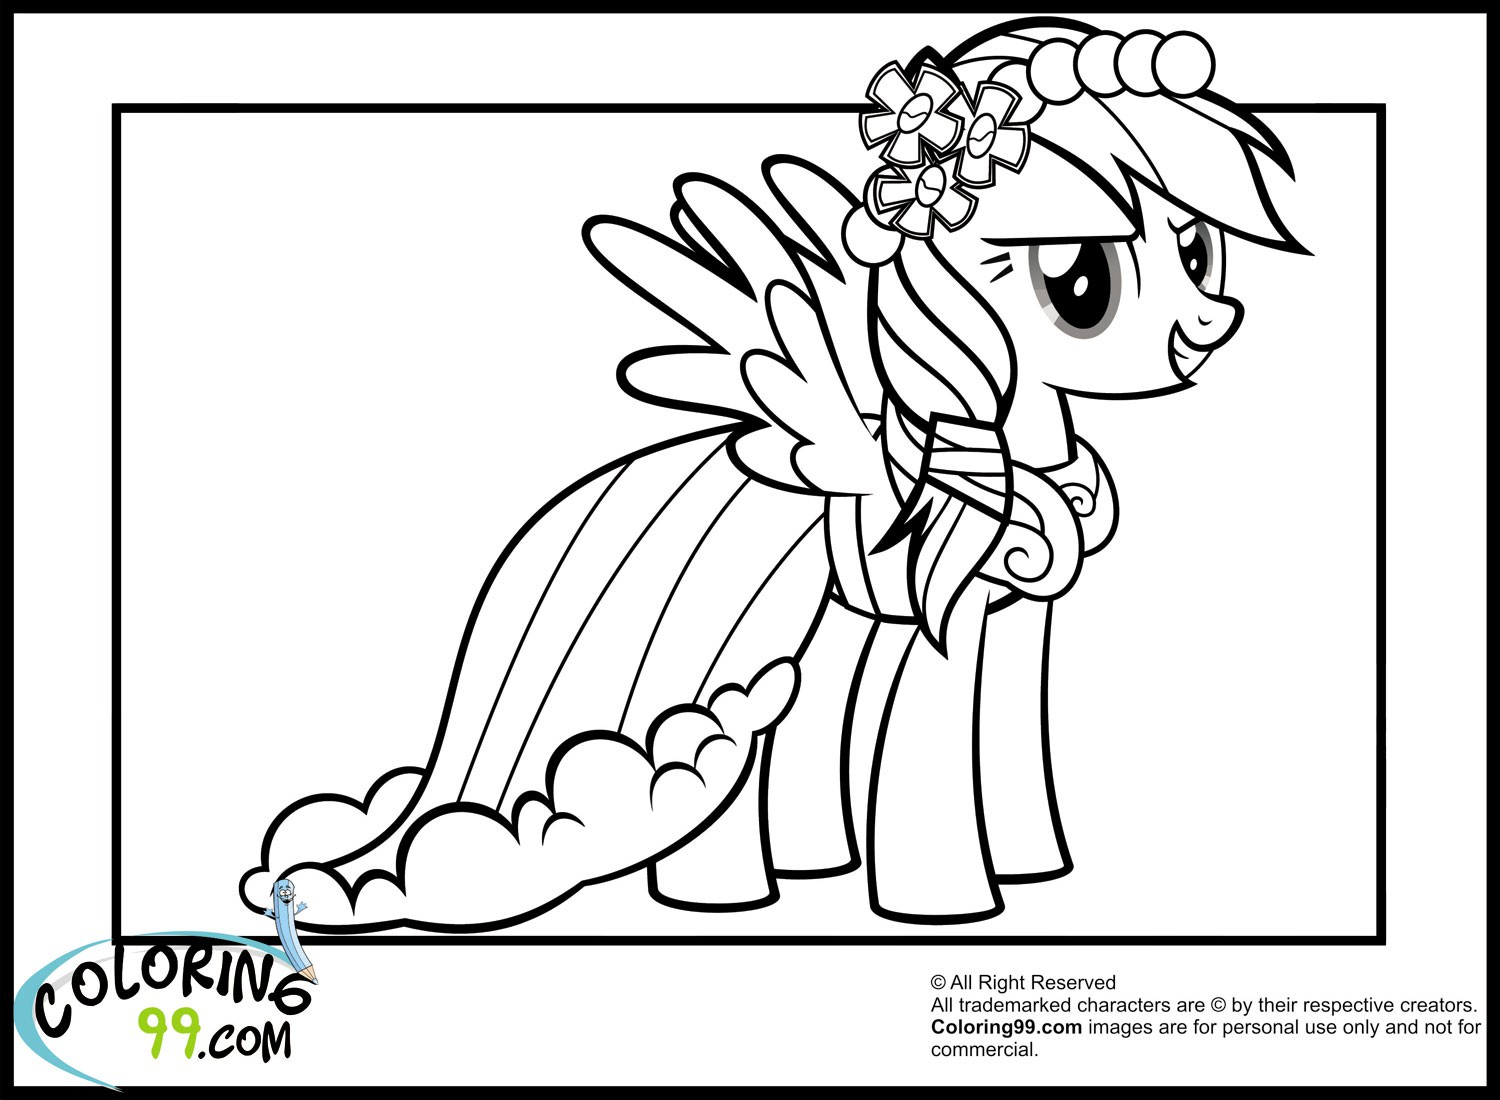 princess-rainbow-dash-coloring-pages-of-princess-rainbow-dash-coloring-pages Princess Rainbow Dash Coloring Pages Cartoon